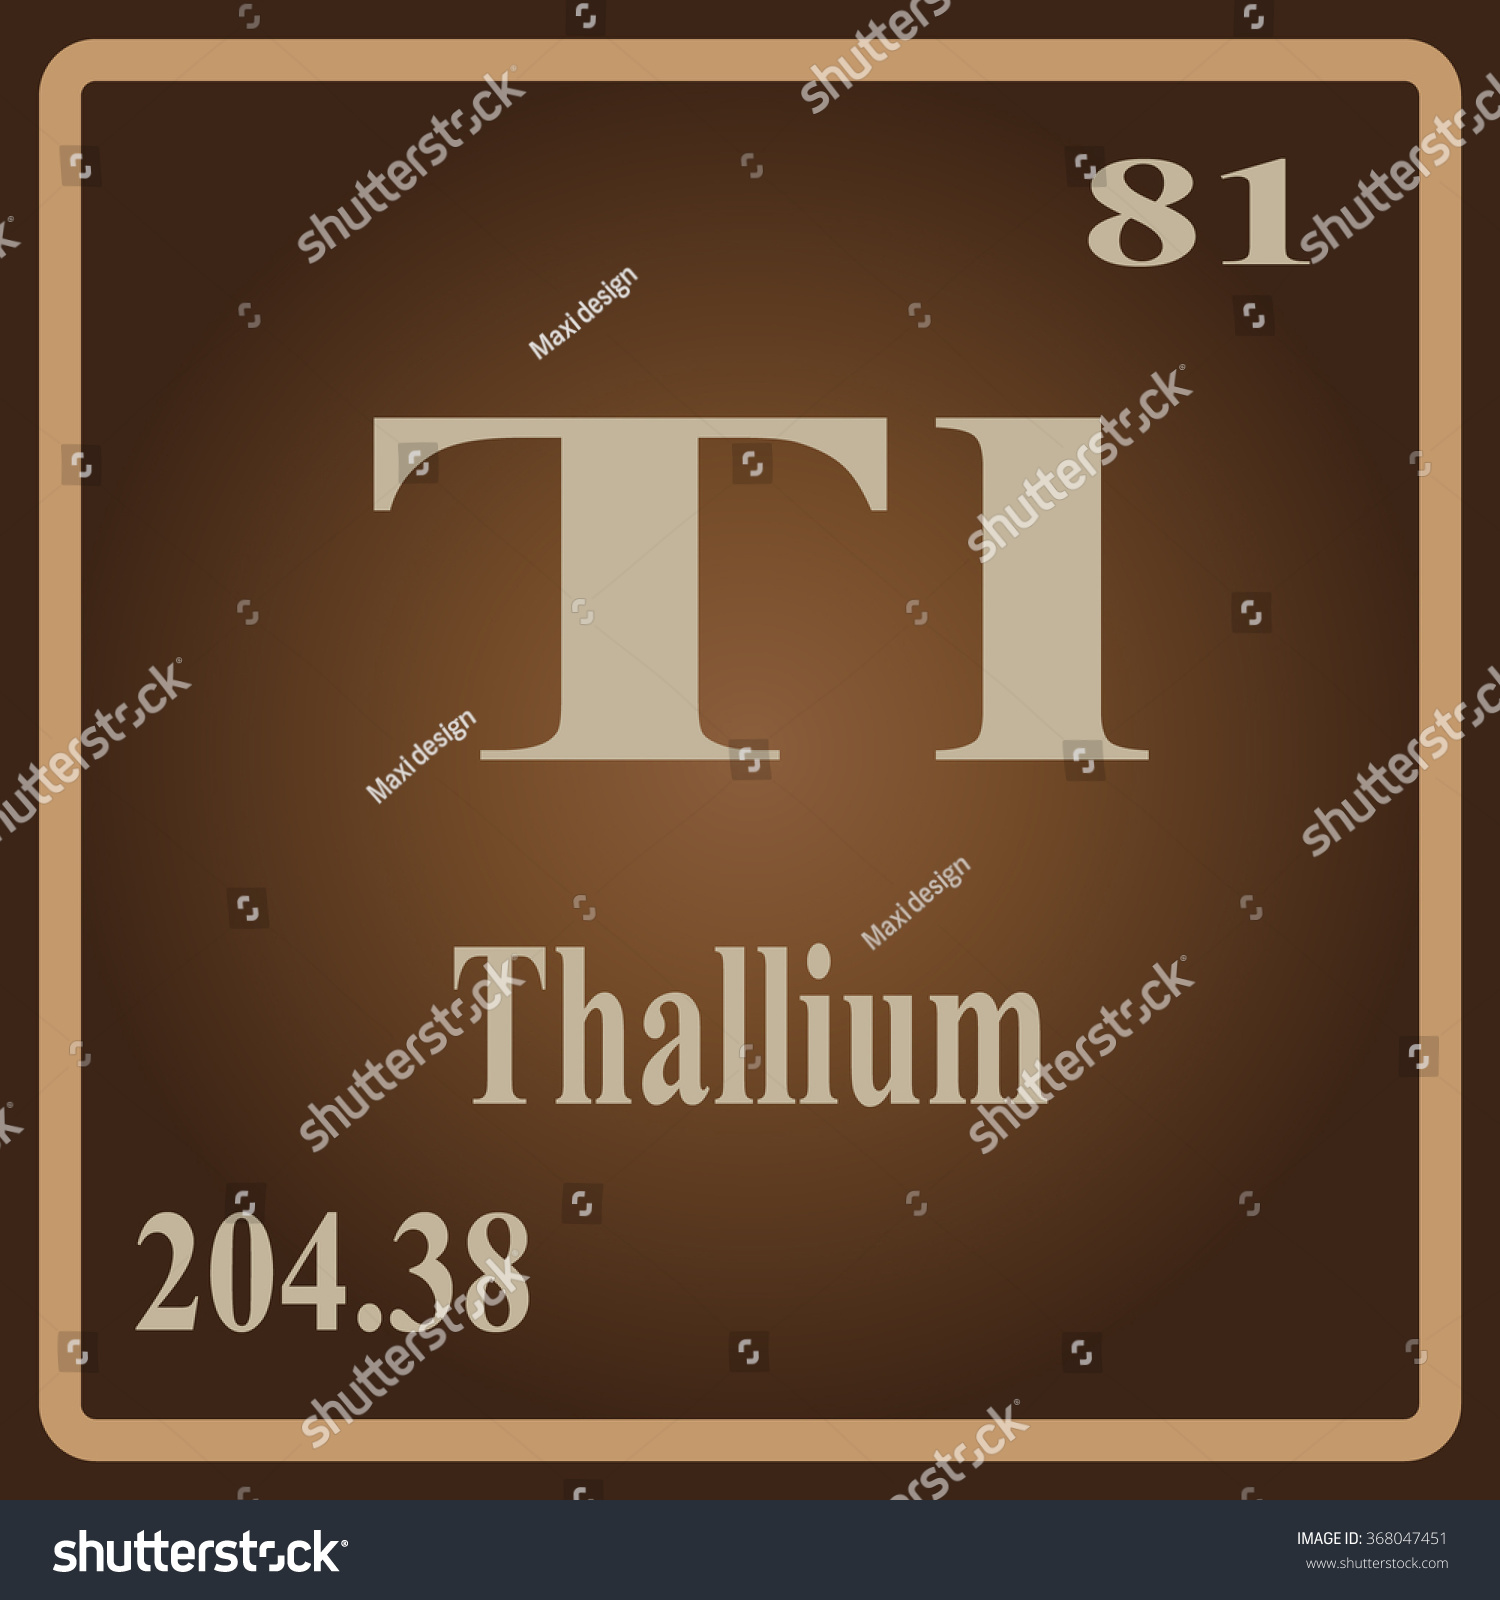 Tl on the periodic table gallery periodic table images tl periodic table gallery periodic table images periodic table thallium gallery periodic table images element tl gamestrikefo Images